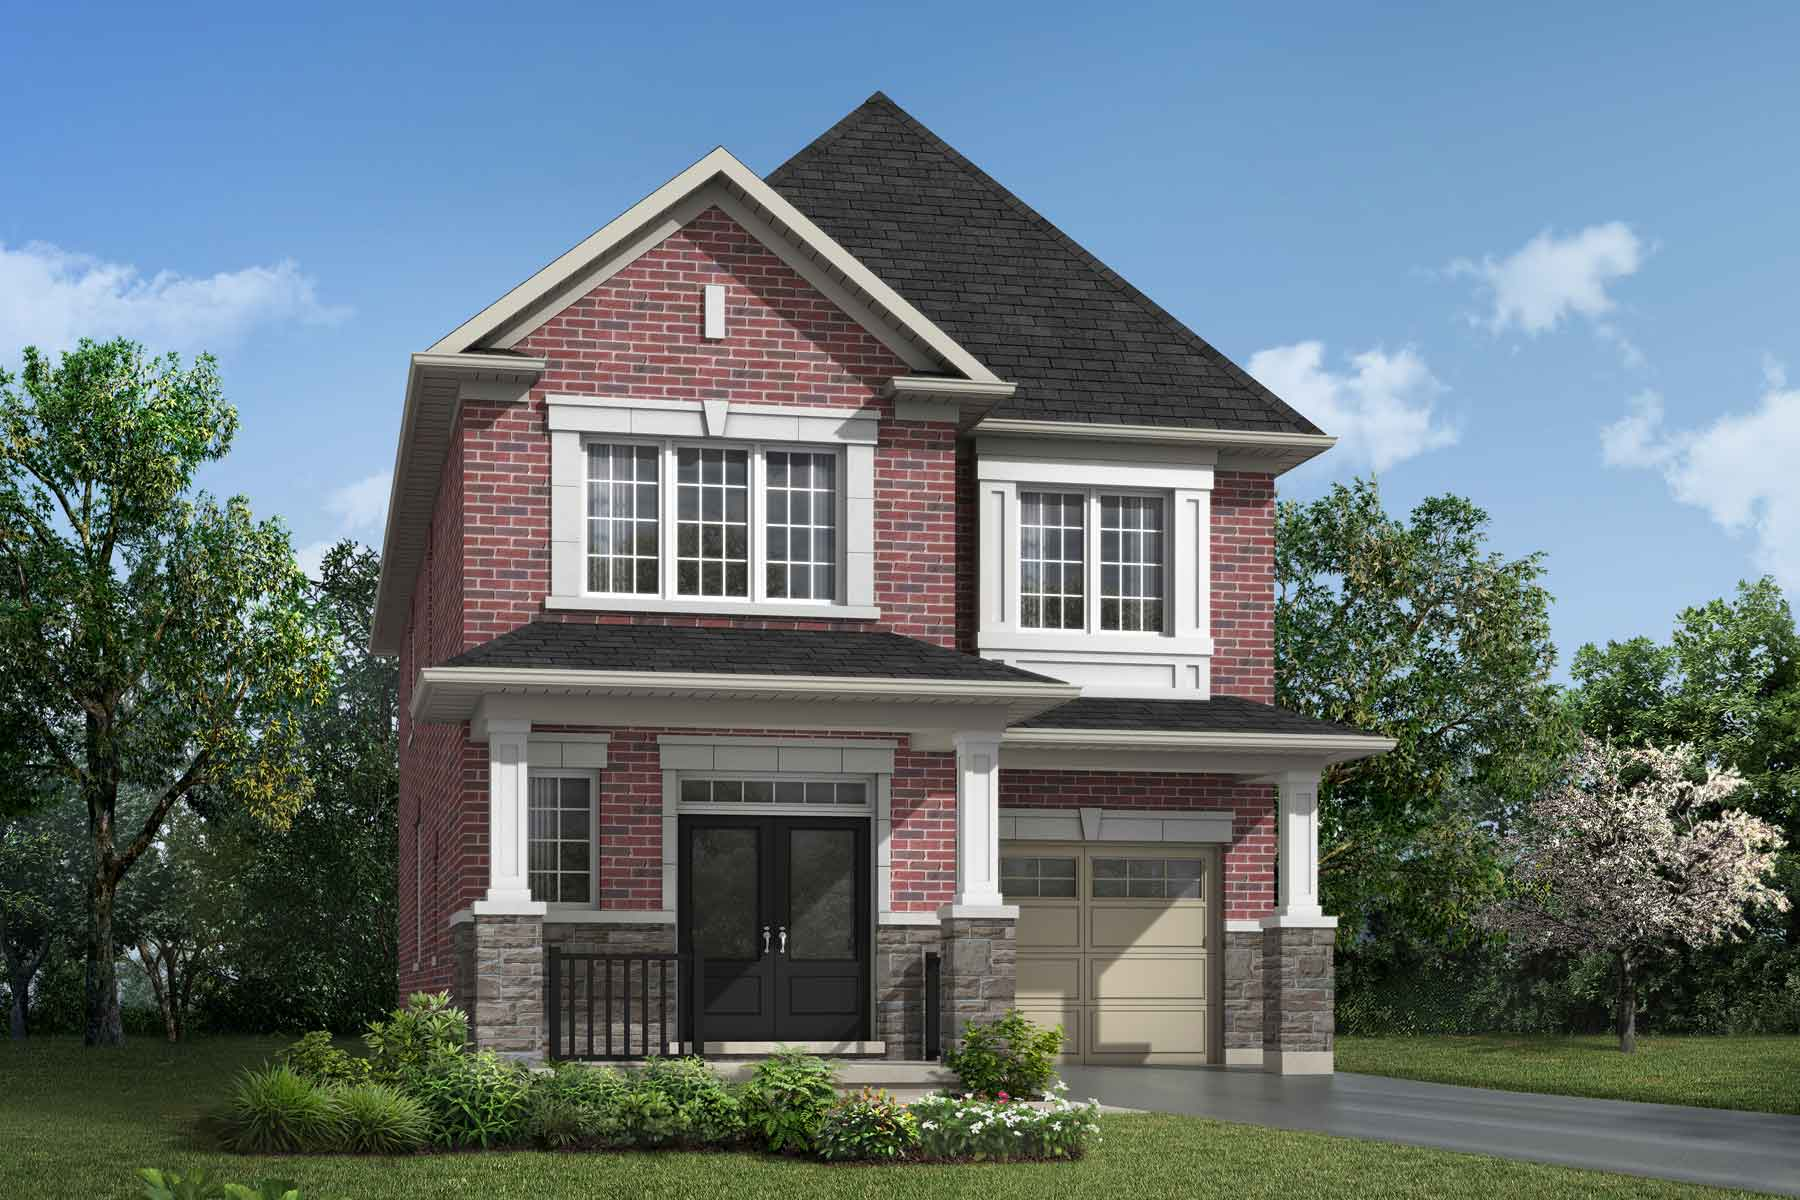 Wildflower Crossing traditional_southestates_oxford_main in Kitchener Ontario by Mattamy Homes